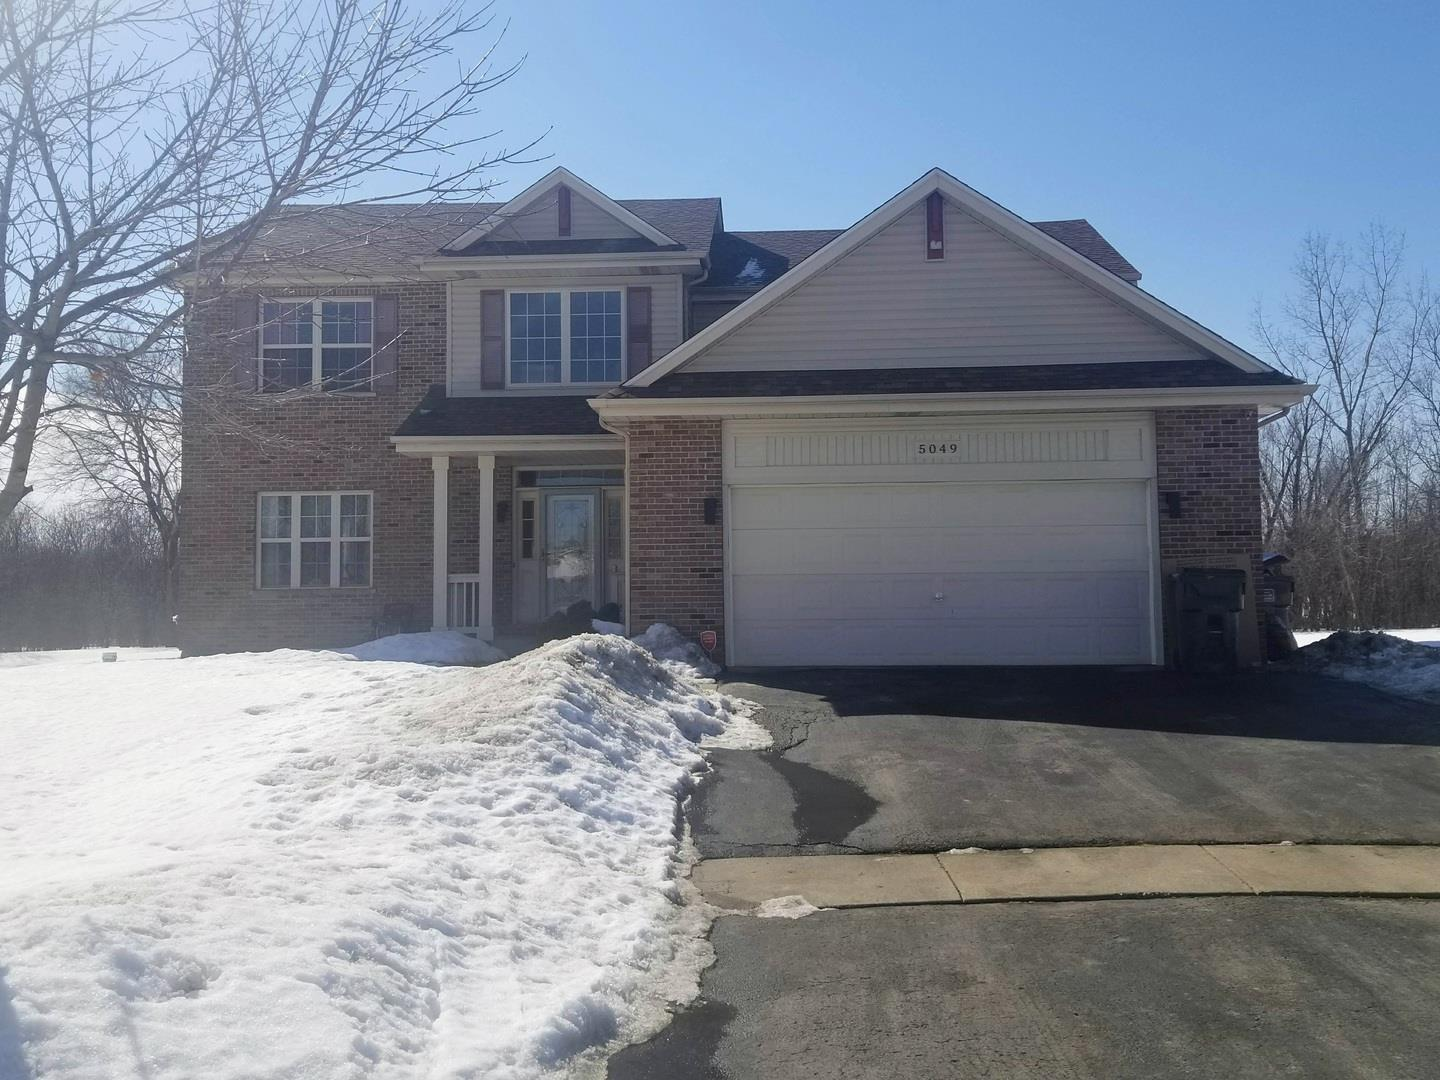 5049 180th Street, Country Club Hills, IL 60478 - #: 11003870